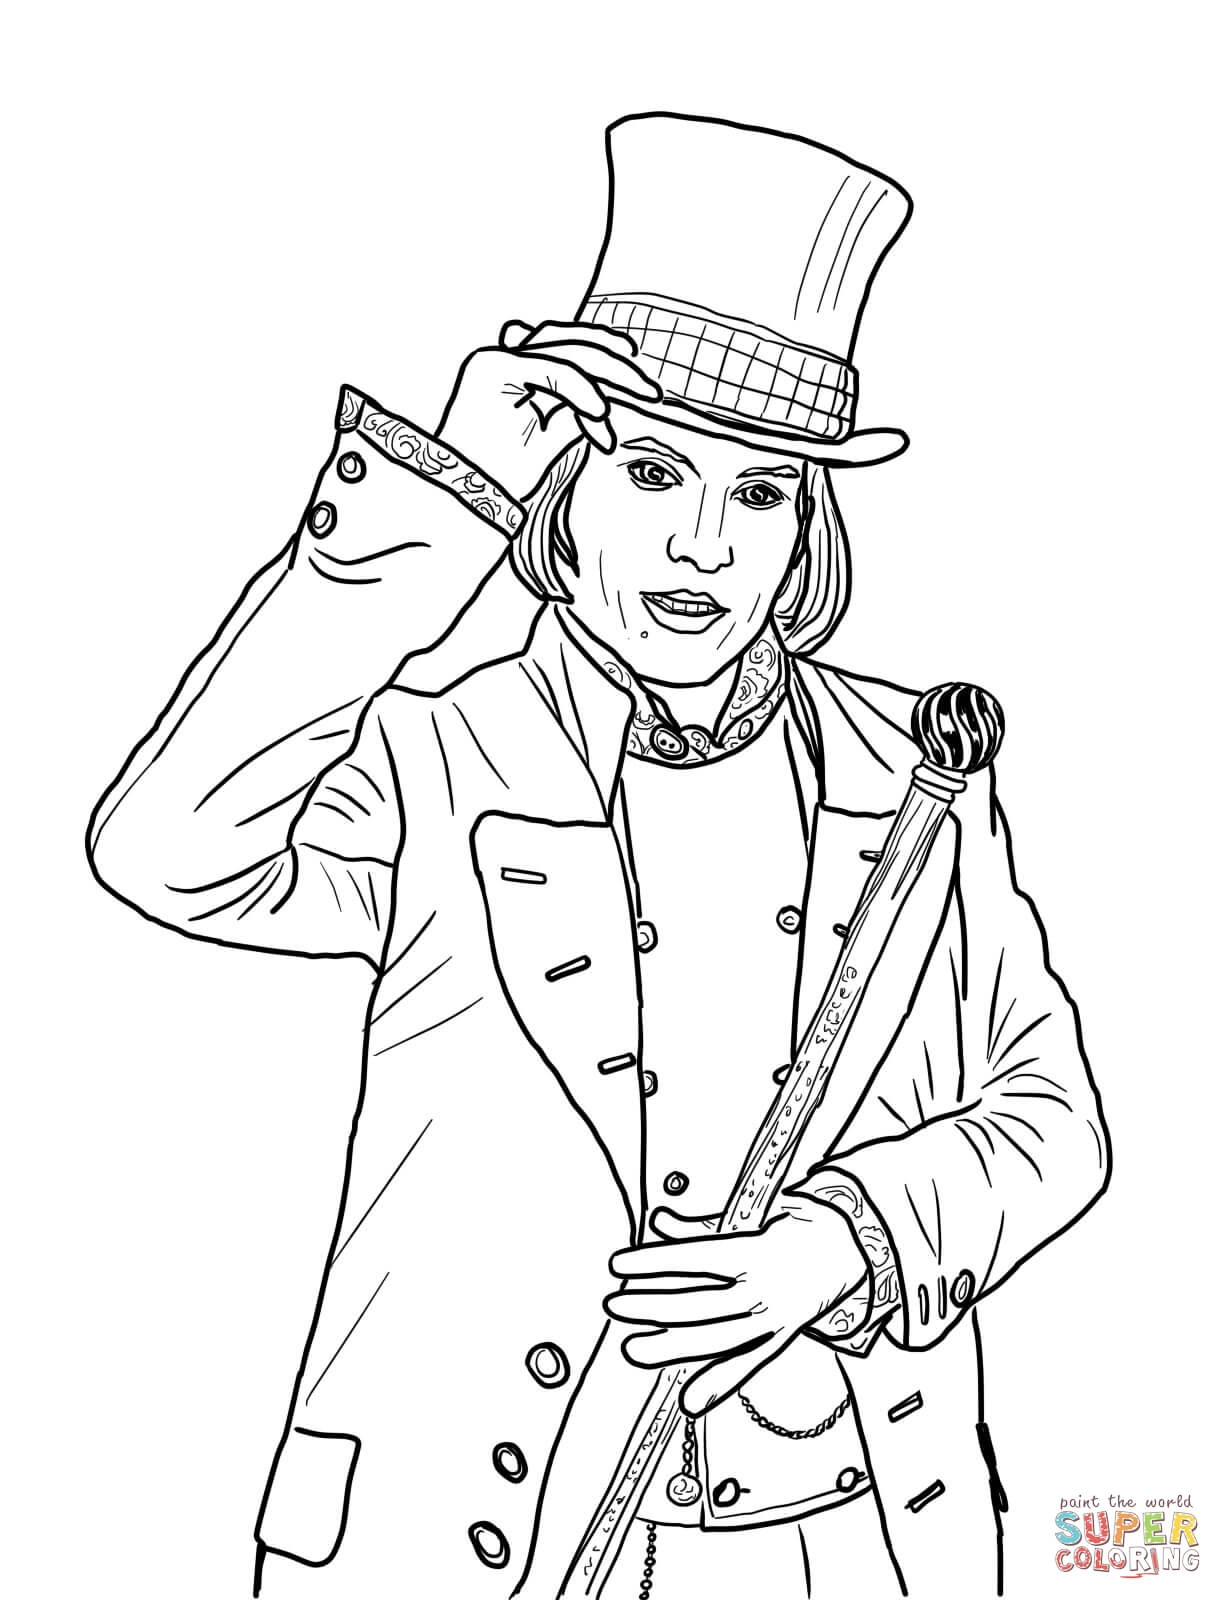 Willy Wonka Coloring Pages - Willy Wonka with Johnny Depp Coloring Page